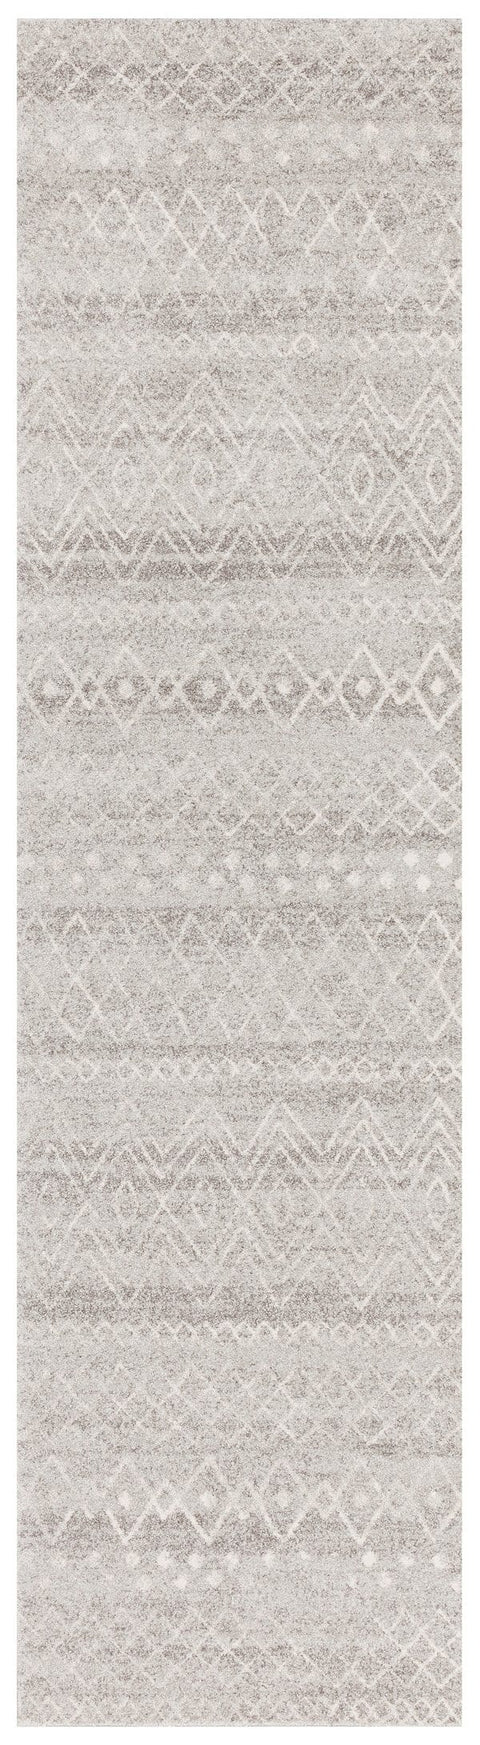 Asmara Grey & White Tribal Pattern Runner Rug